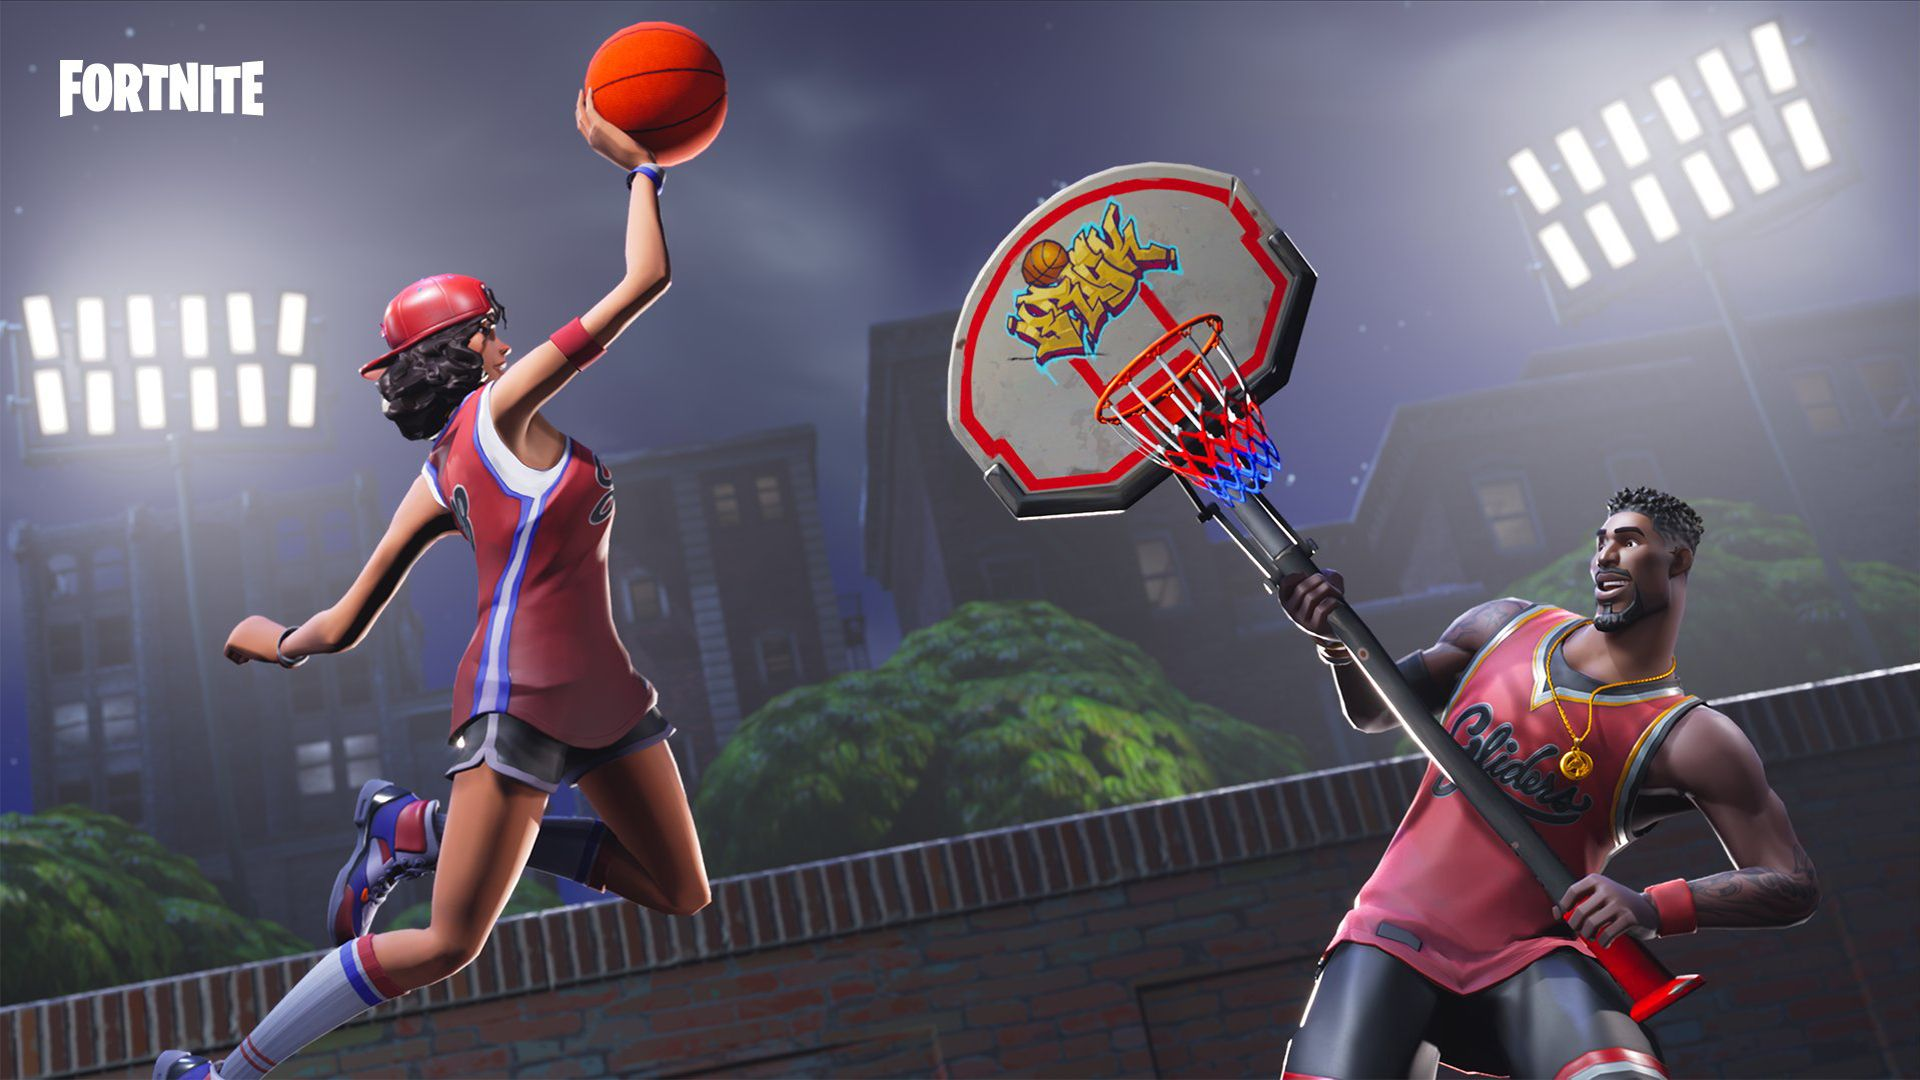 Triple Threat Jumpshot Are Rare Fortnite Skin Depicting Basketball Players That Were Released During The Nba Finals Of 2018 It S Pretty Unique For A Rare Ski